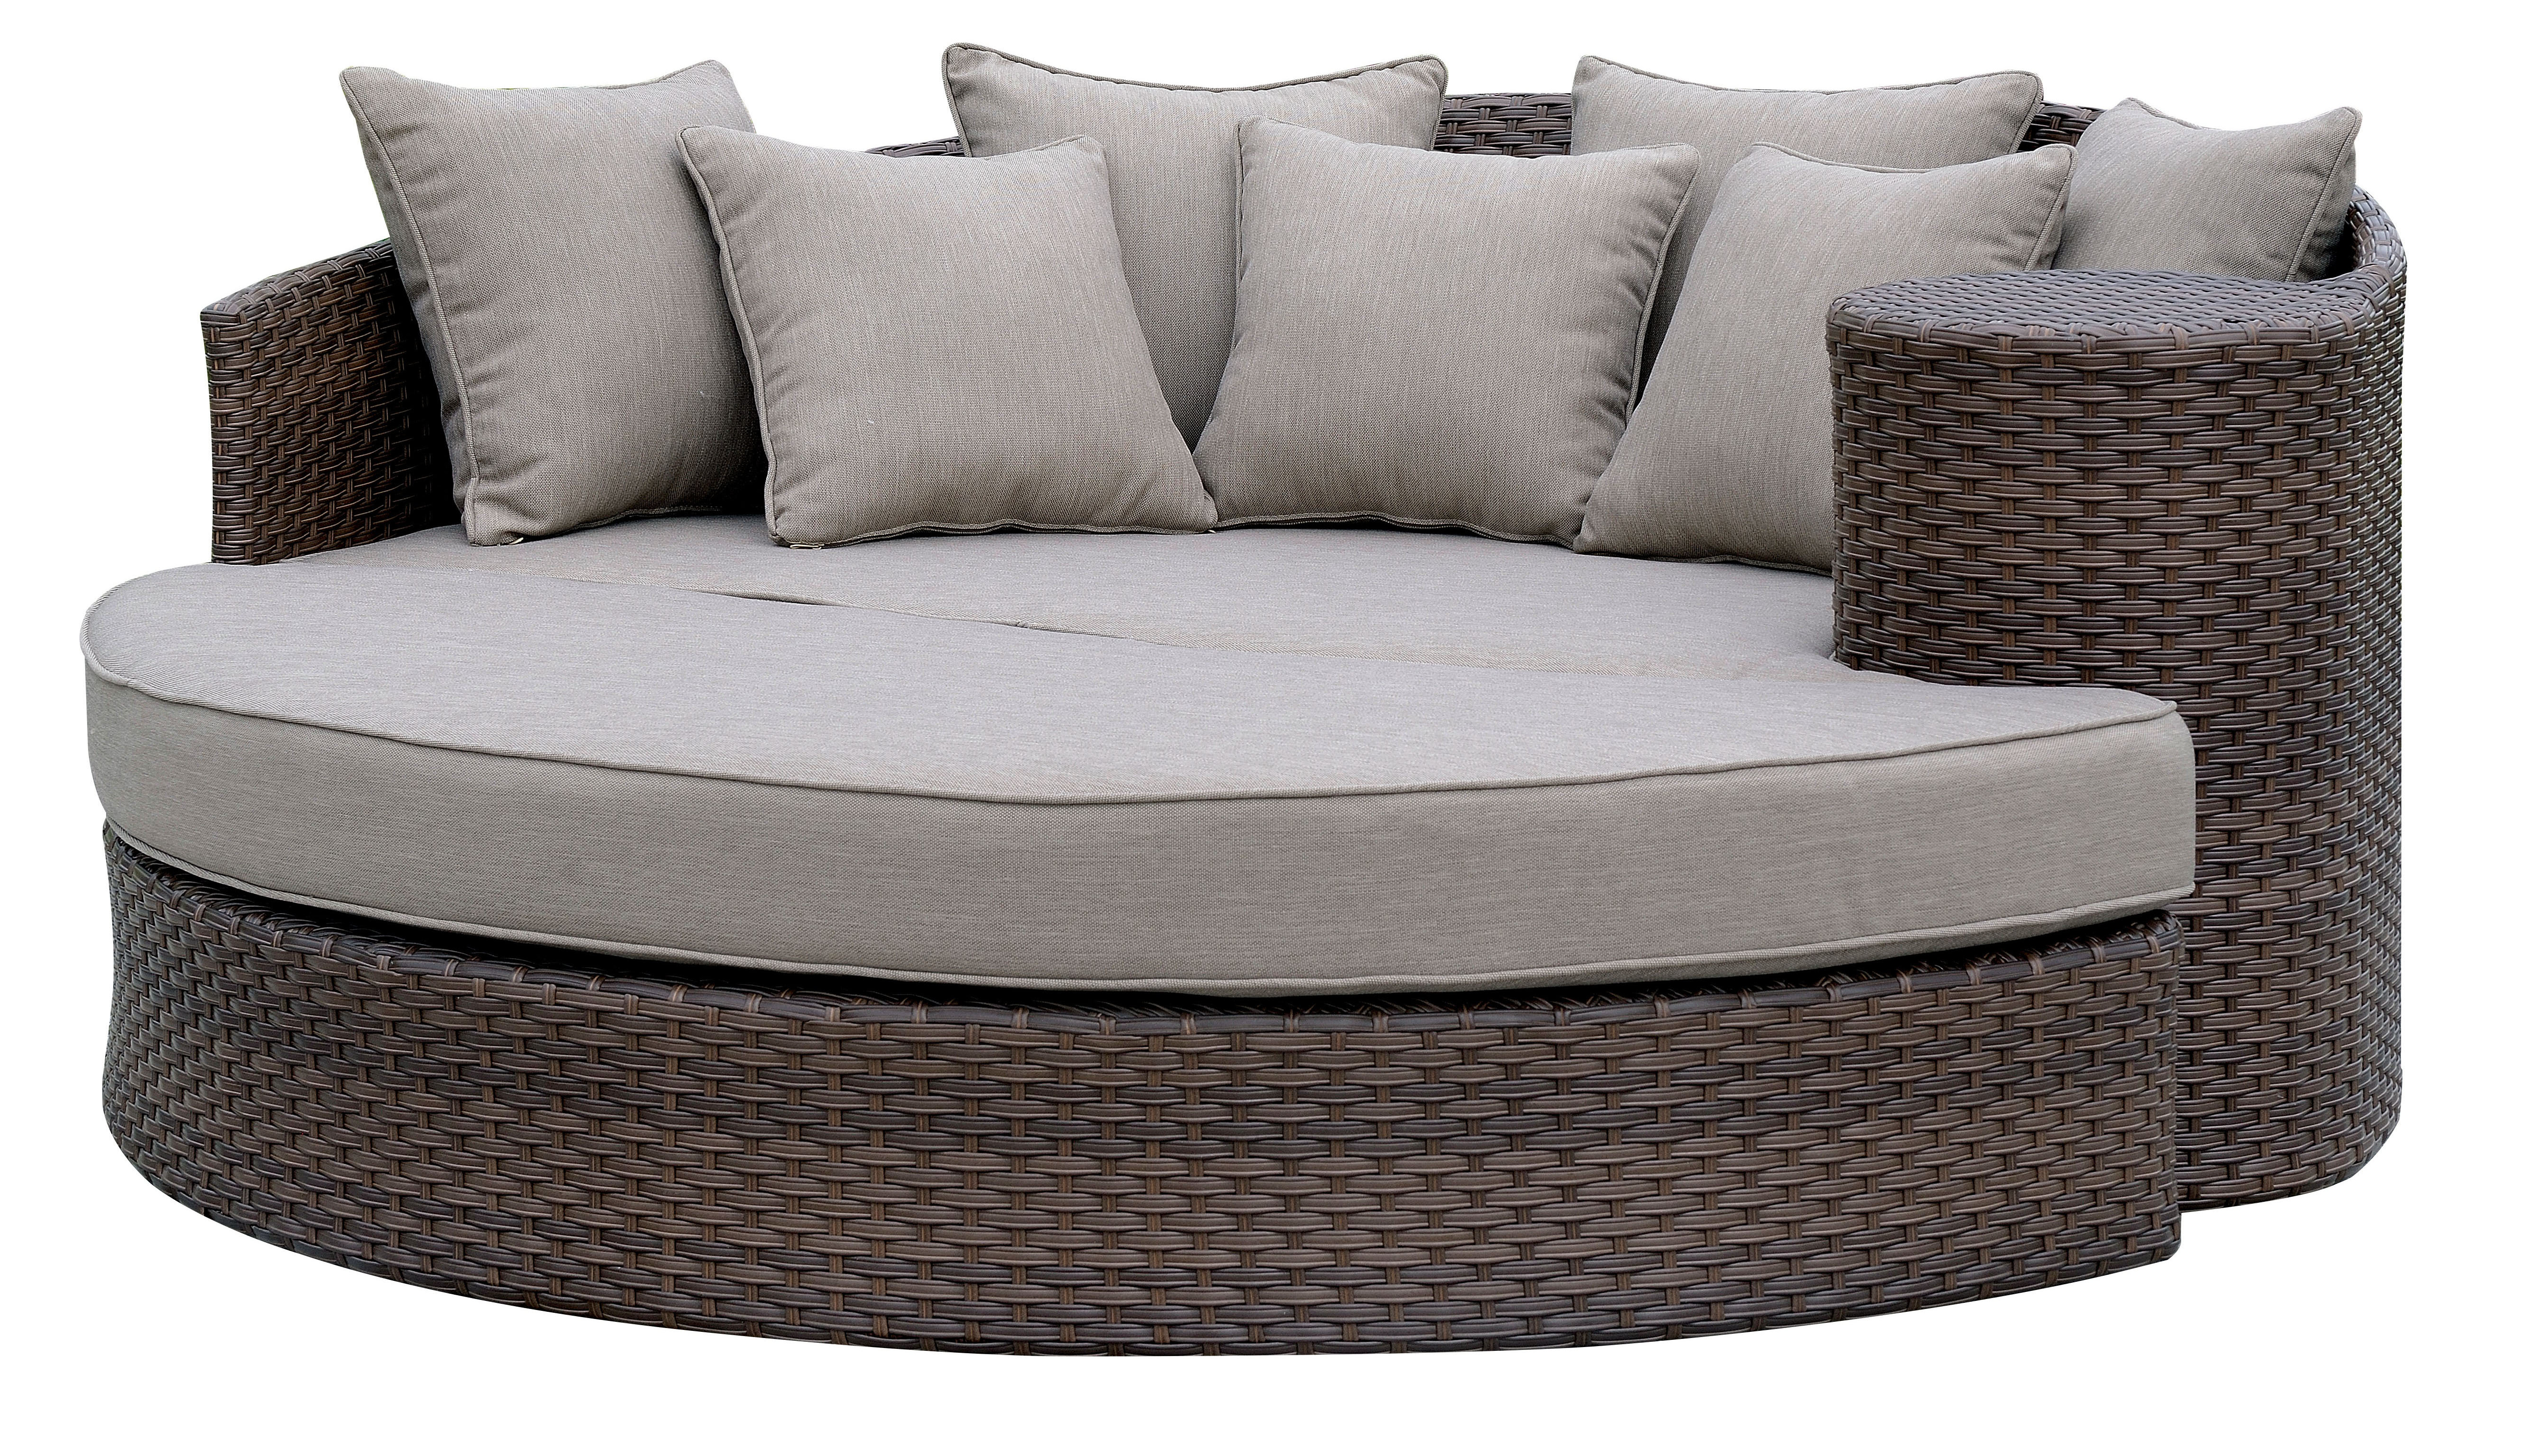 Whyte Contemporary Patio Daybed With Cushions For Most Current Patio Daybeds With Cushions (View 19 of 20)